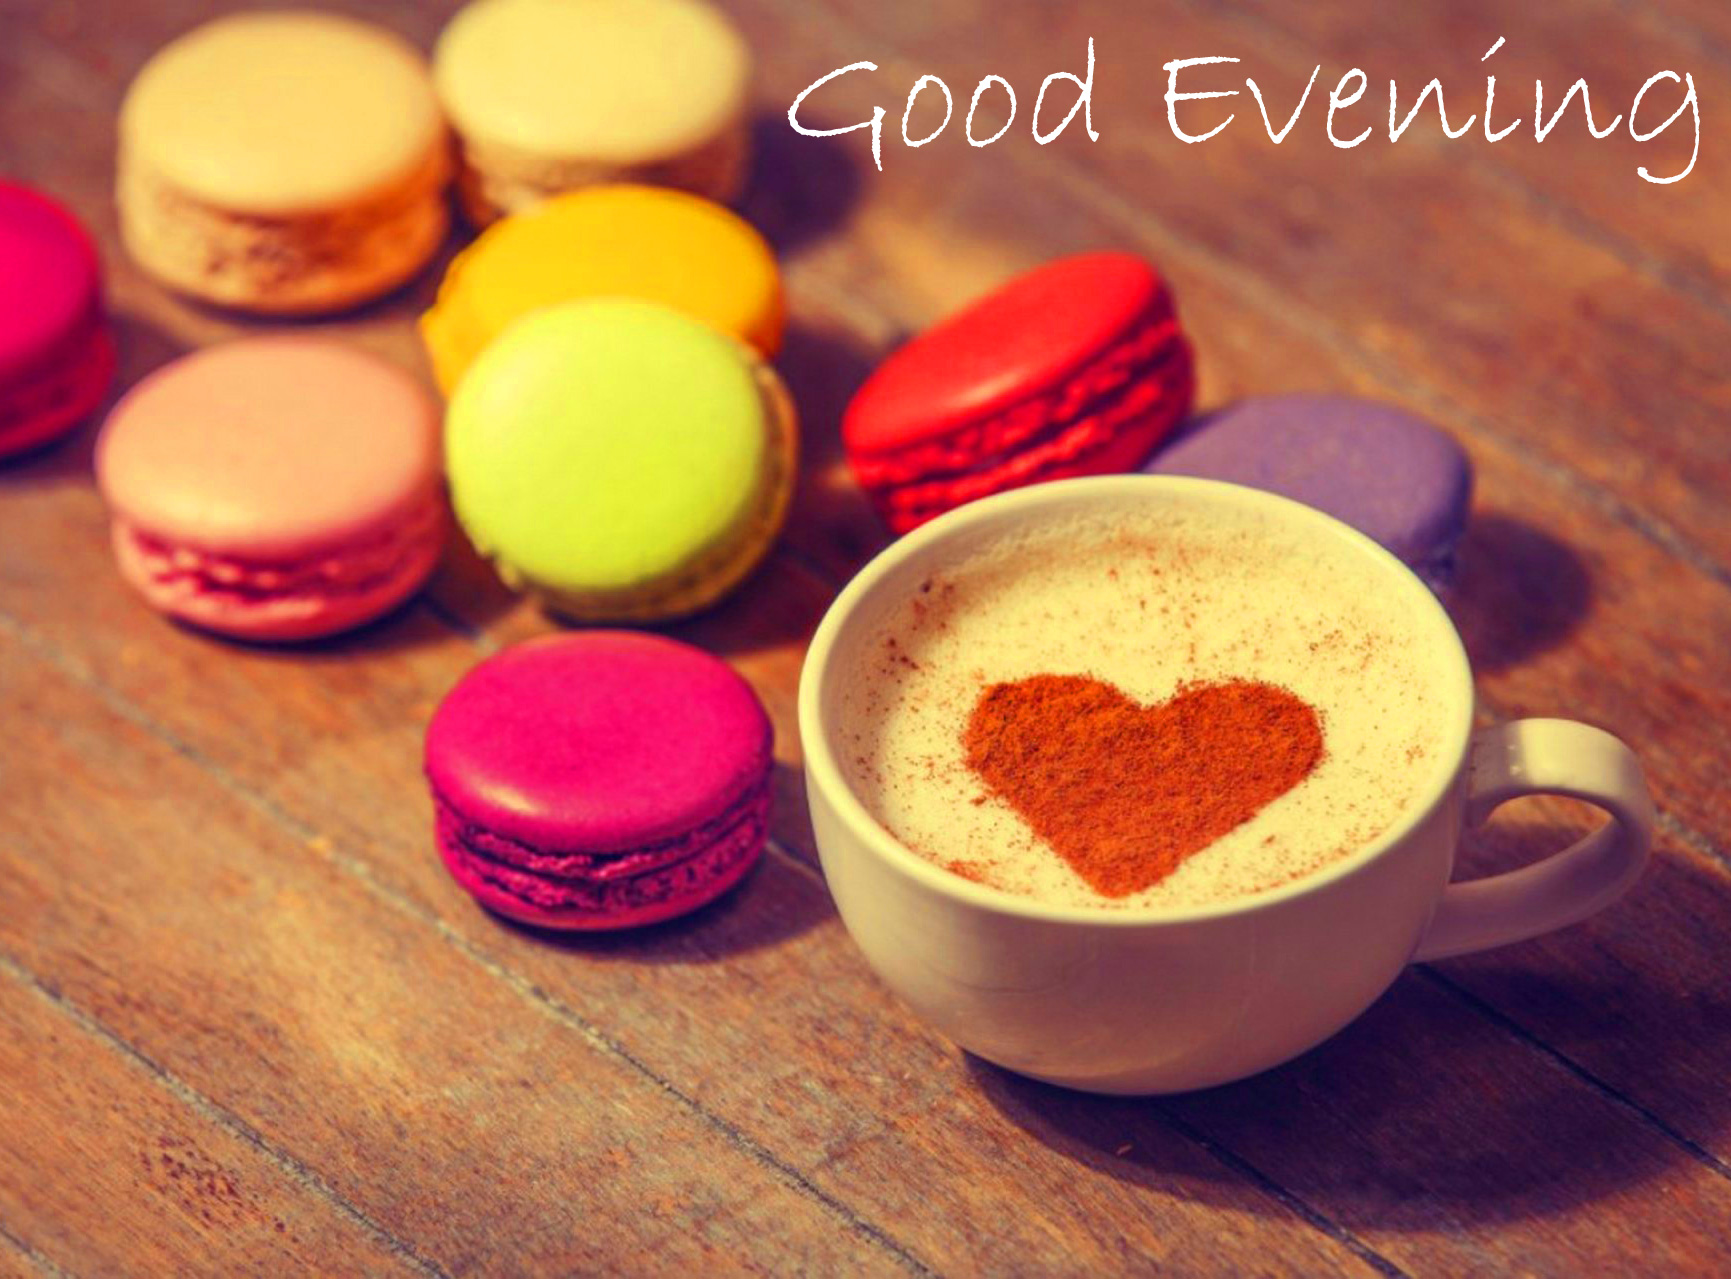 Macarons and Heart Coffee with Good Evening Wish